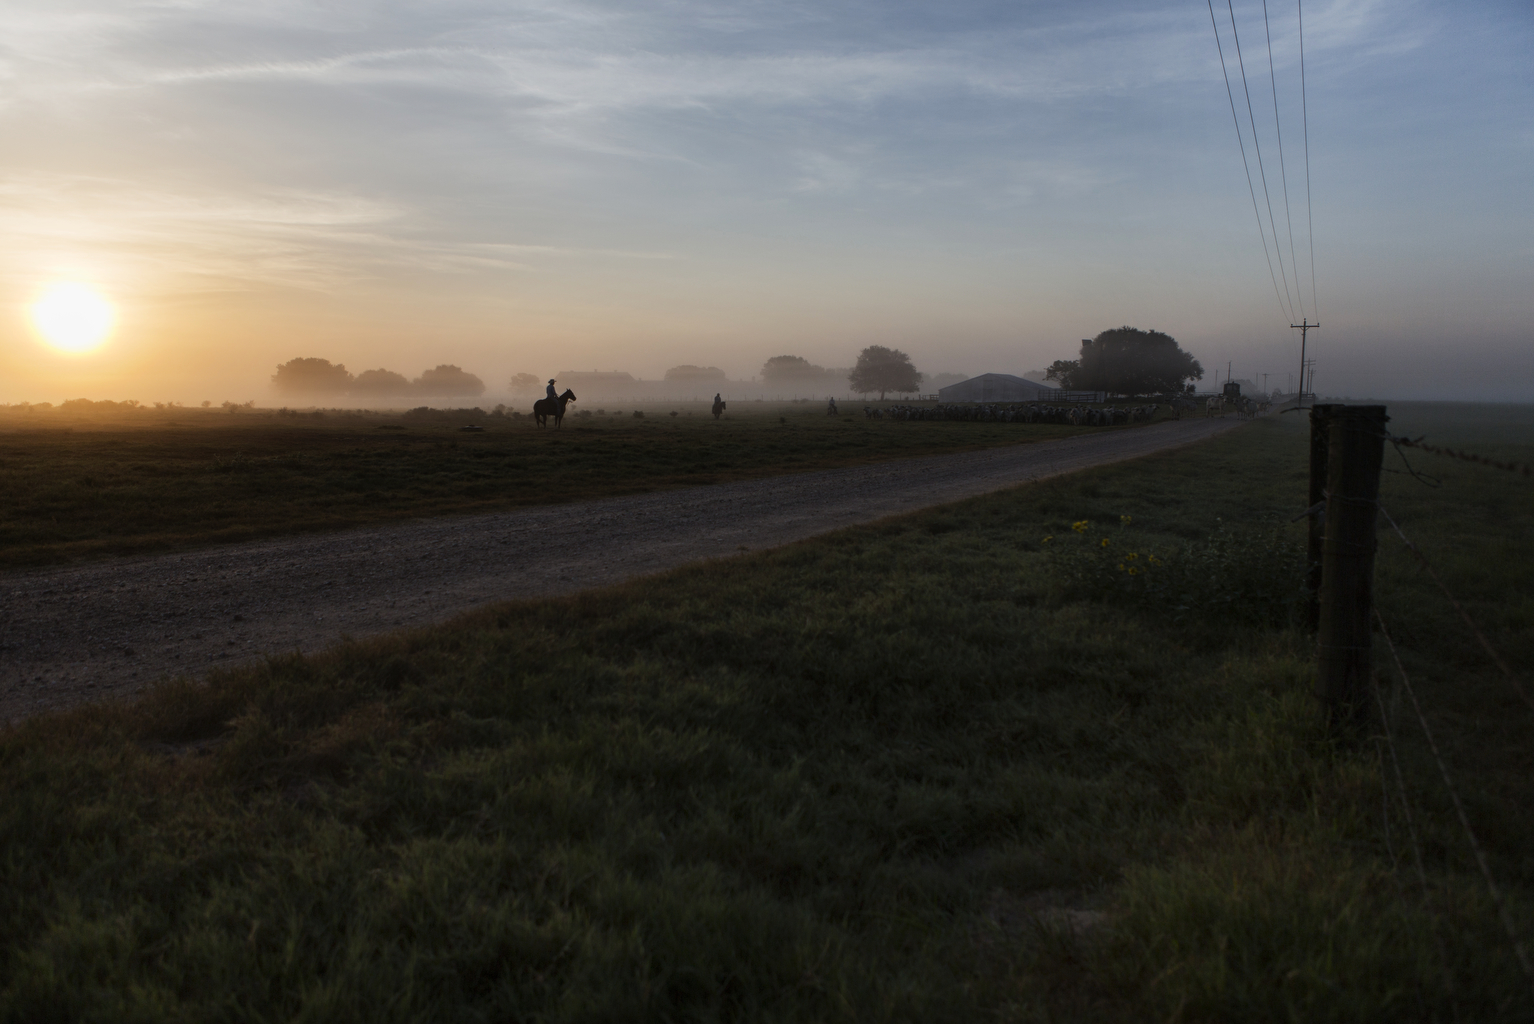 Frank, the Head Rancher of the Kaechele Ranch,and his son, Ryan, scale through the fields of the Texas prairie each morning as the sun rises above the horizon.  The Kaechele Ranch was founded in 1899 by the grandfather of Frank's wife, Bonnie. The 13,000-acre ranch in southeast Texas is located along the San Bernard River, where the Austin, Colorado and Wharton County lines meet.